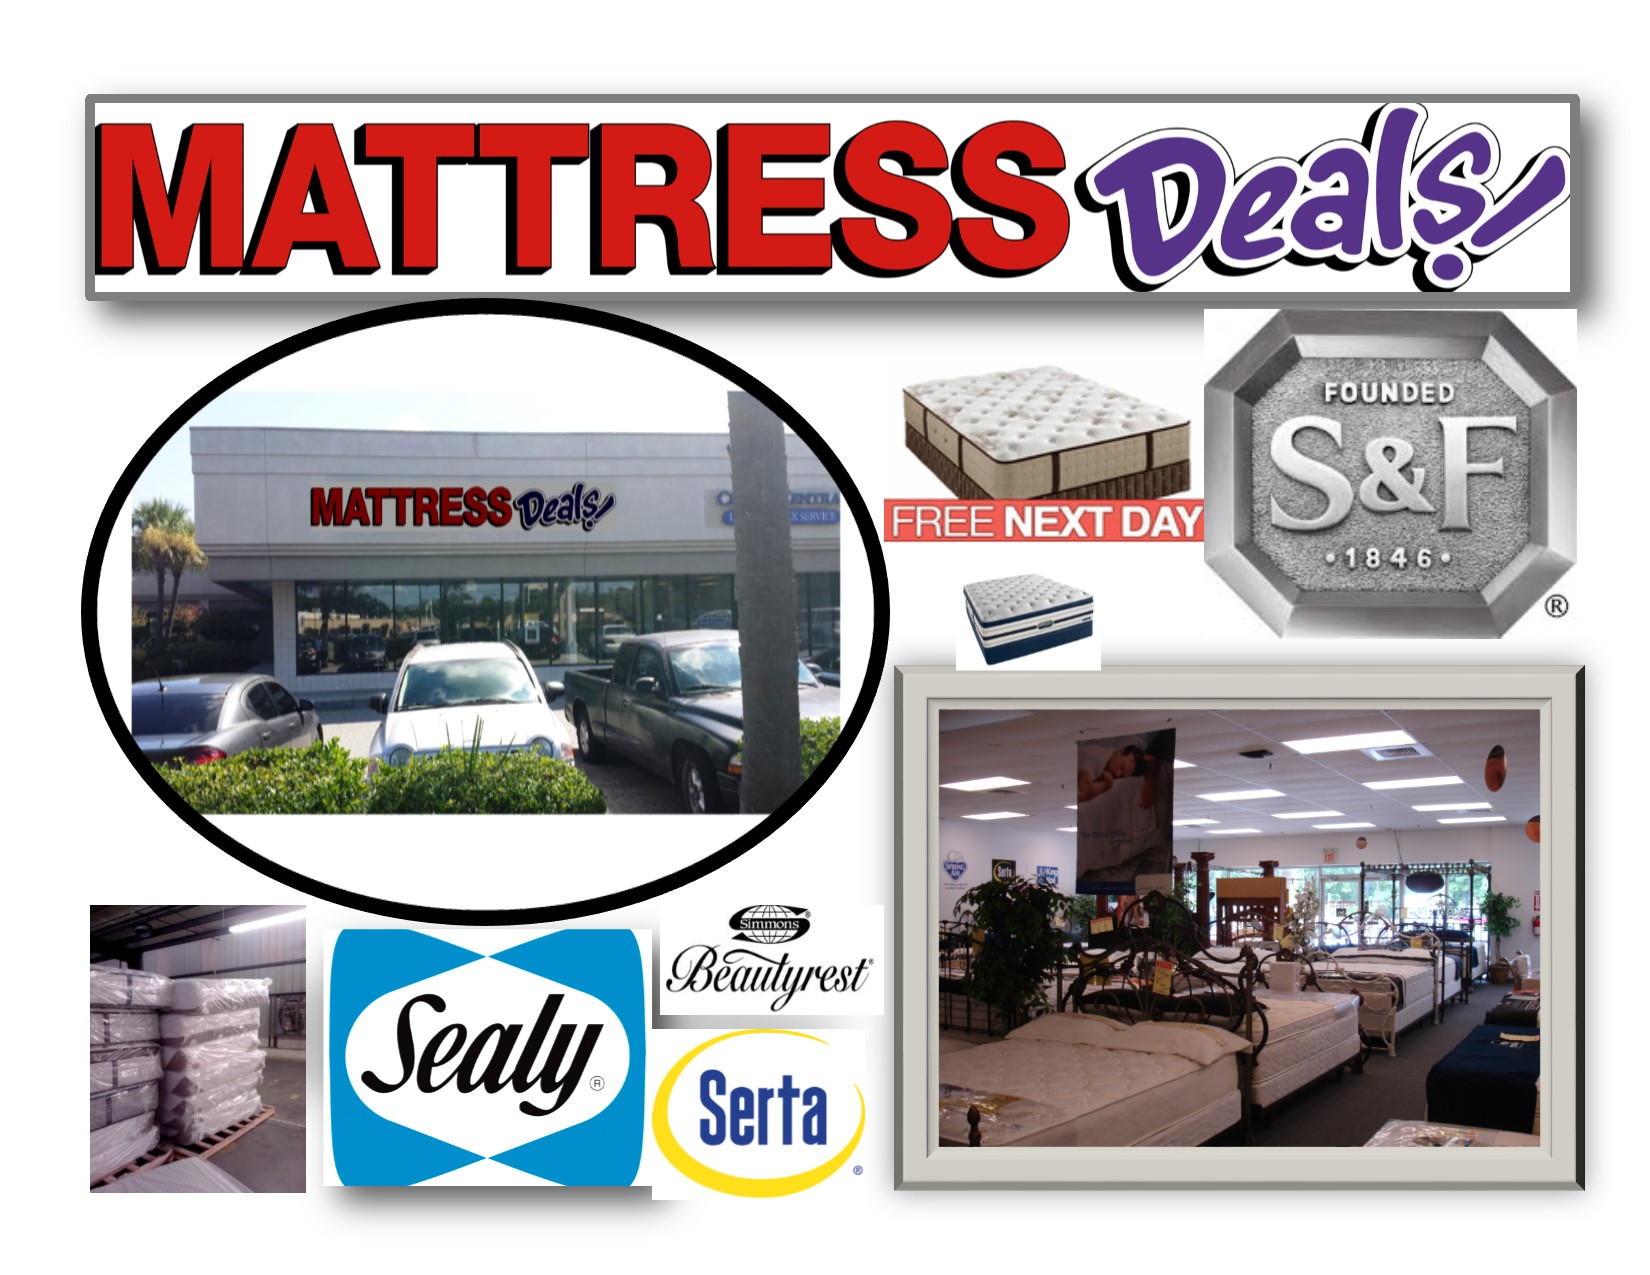 Mattress Deals image 30